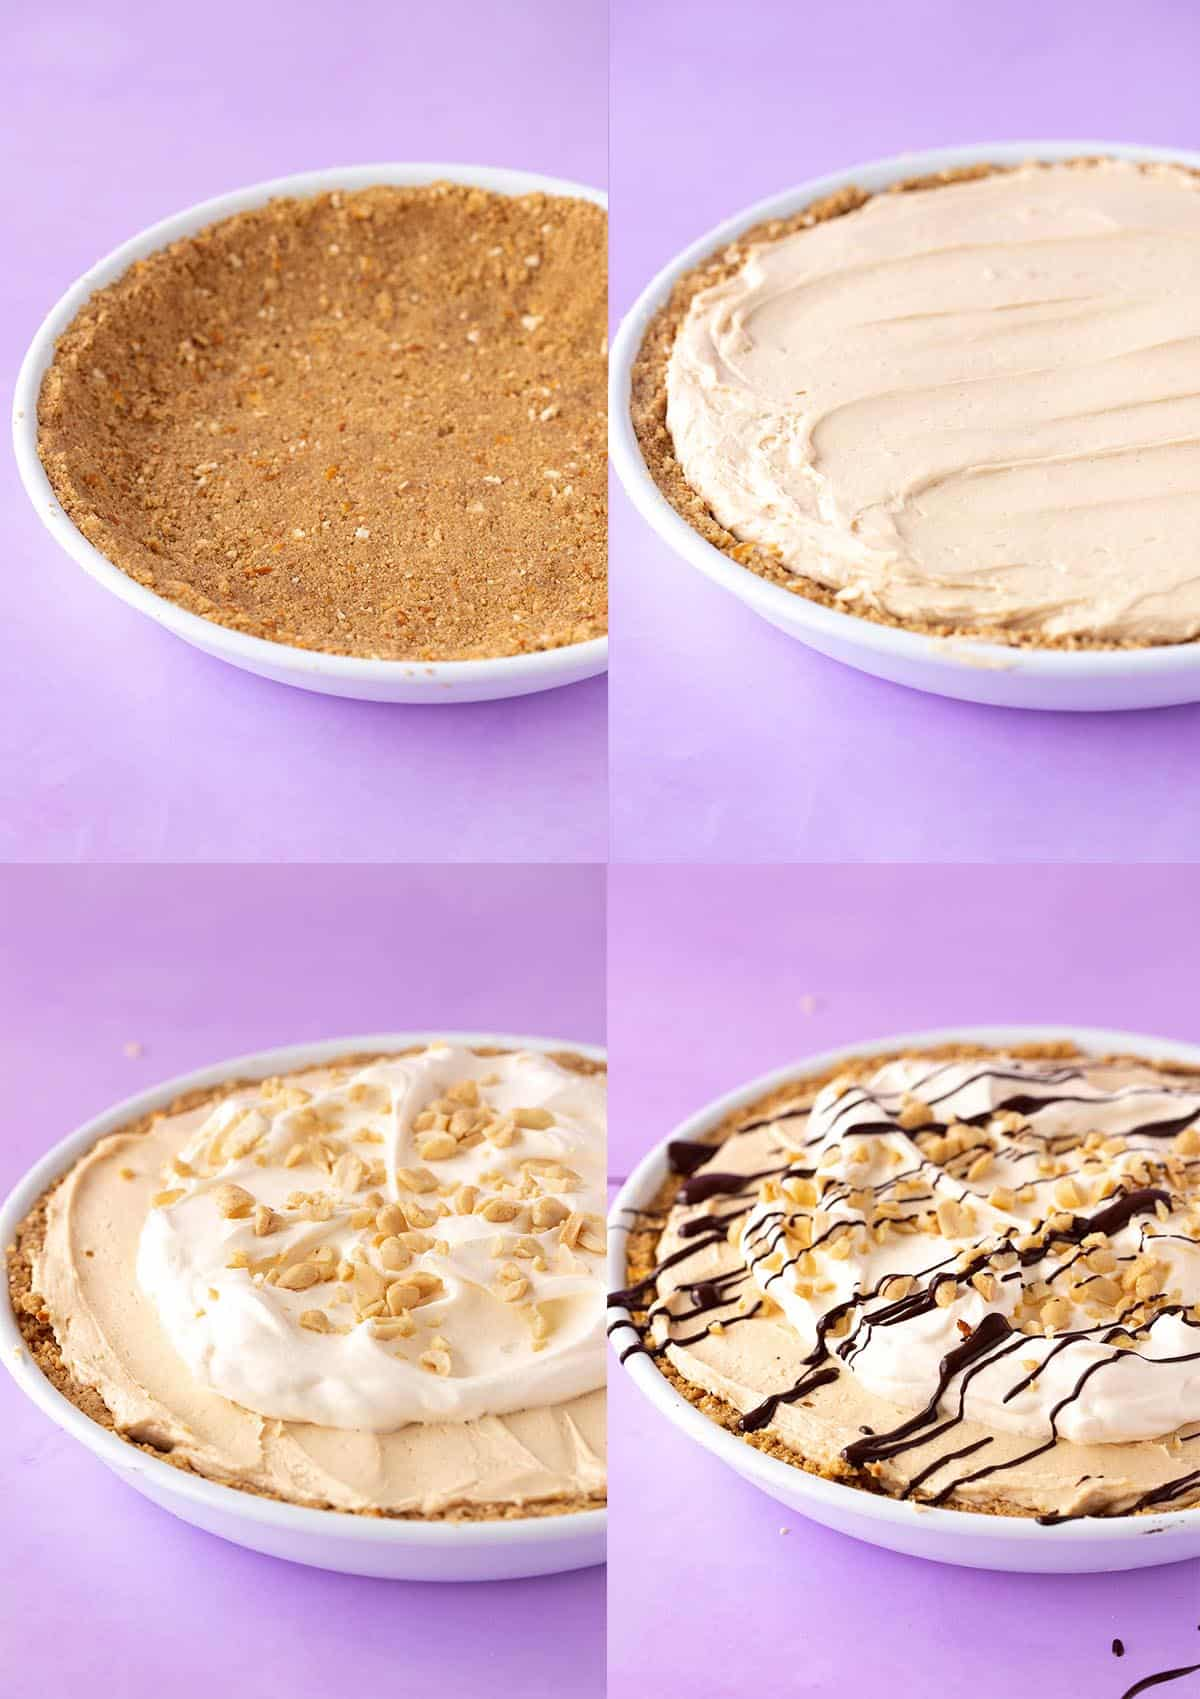 How-to photos showing how to make a No Bake Peanut Butter Pie.